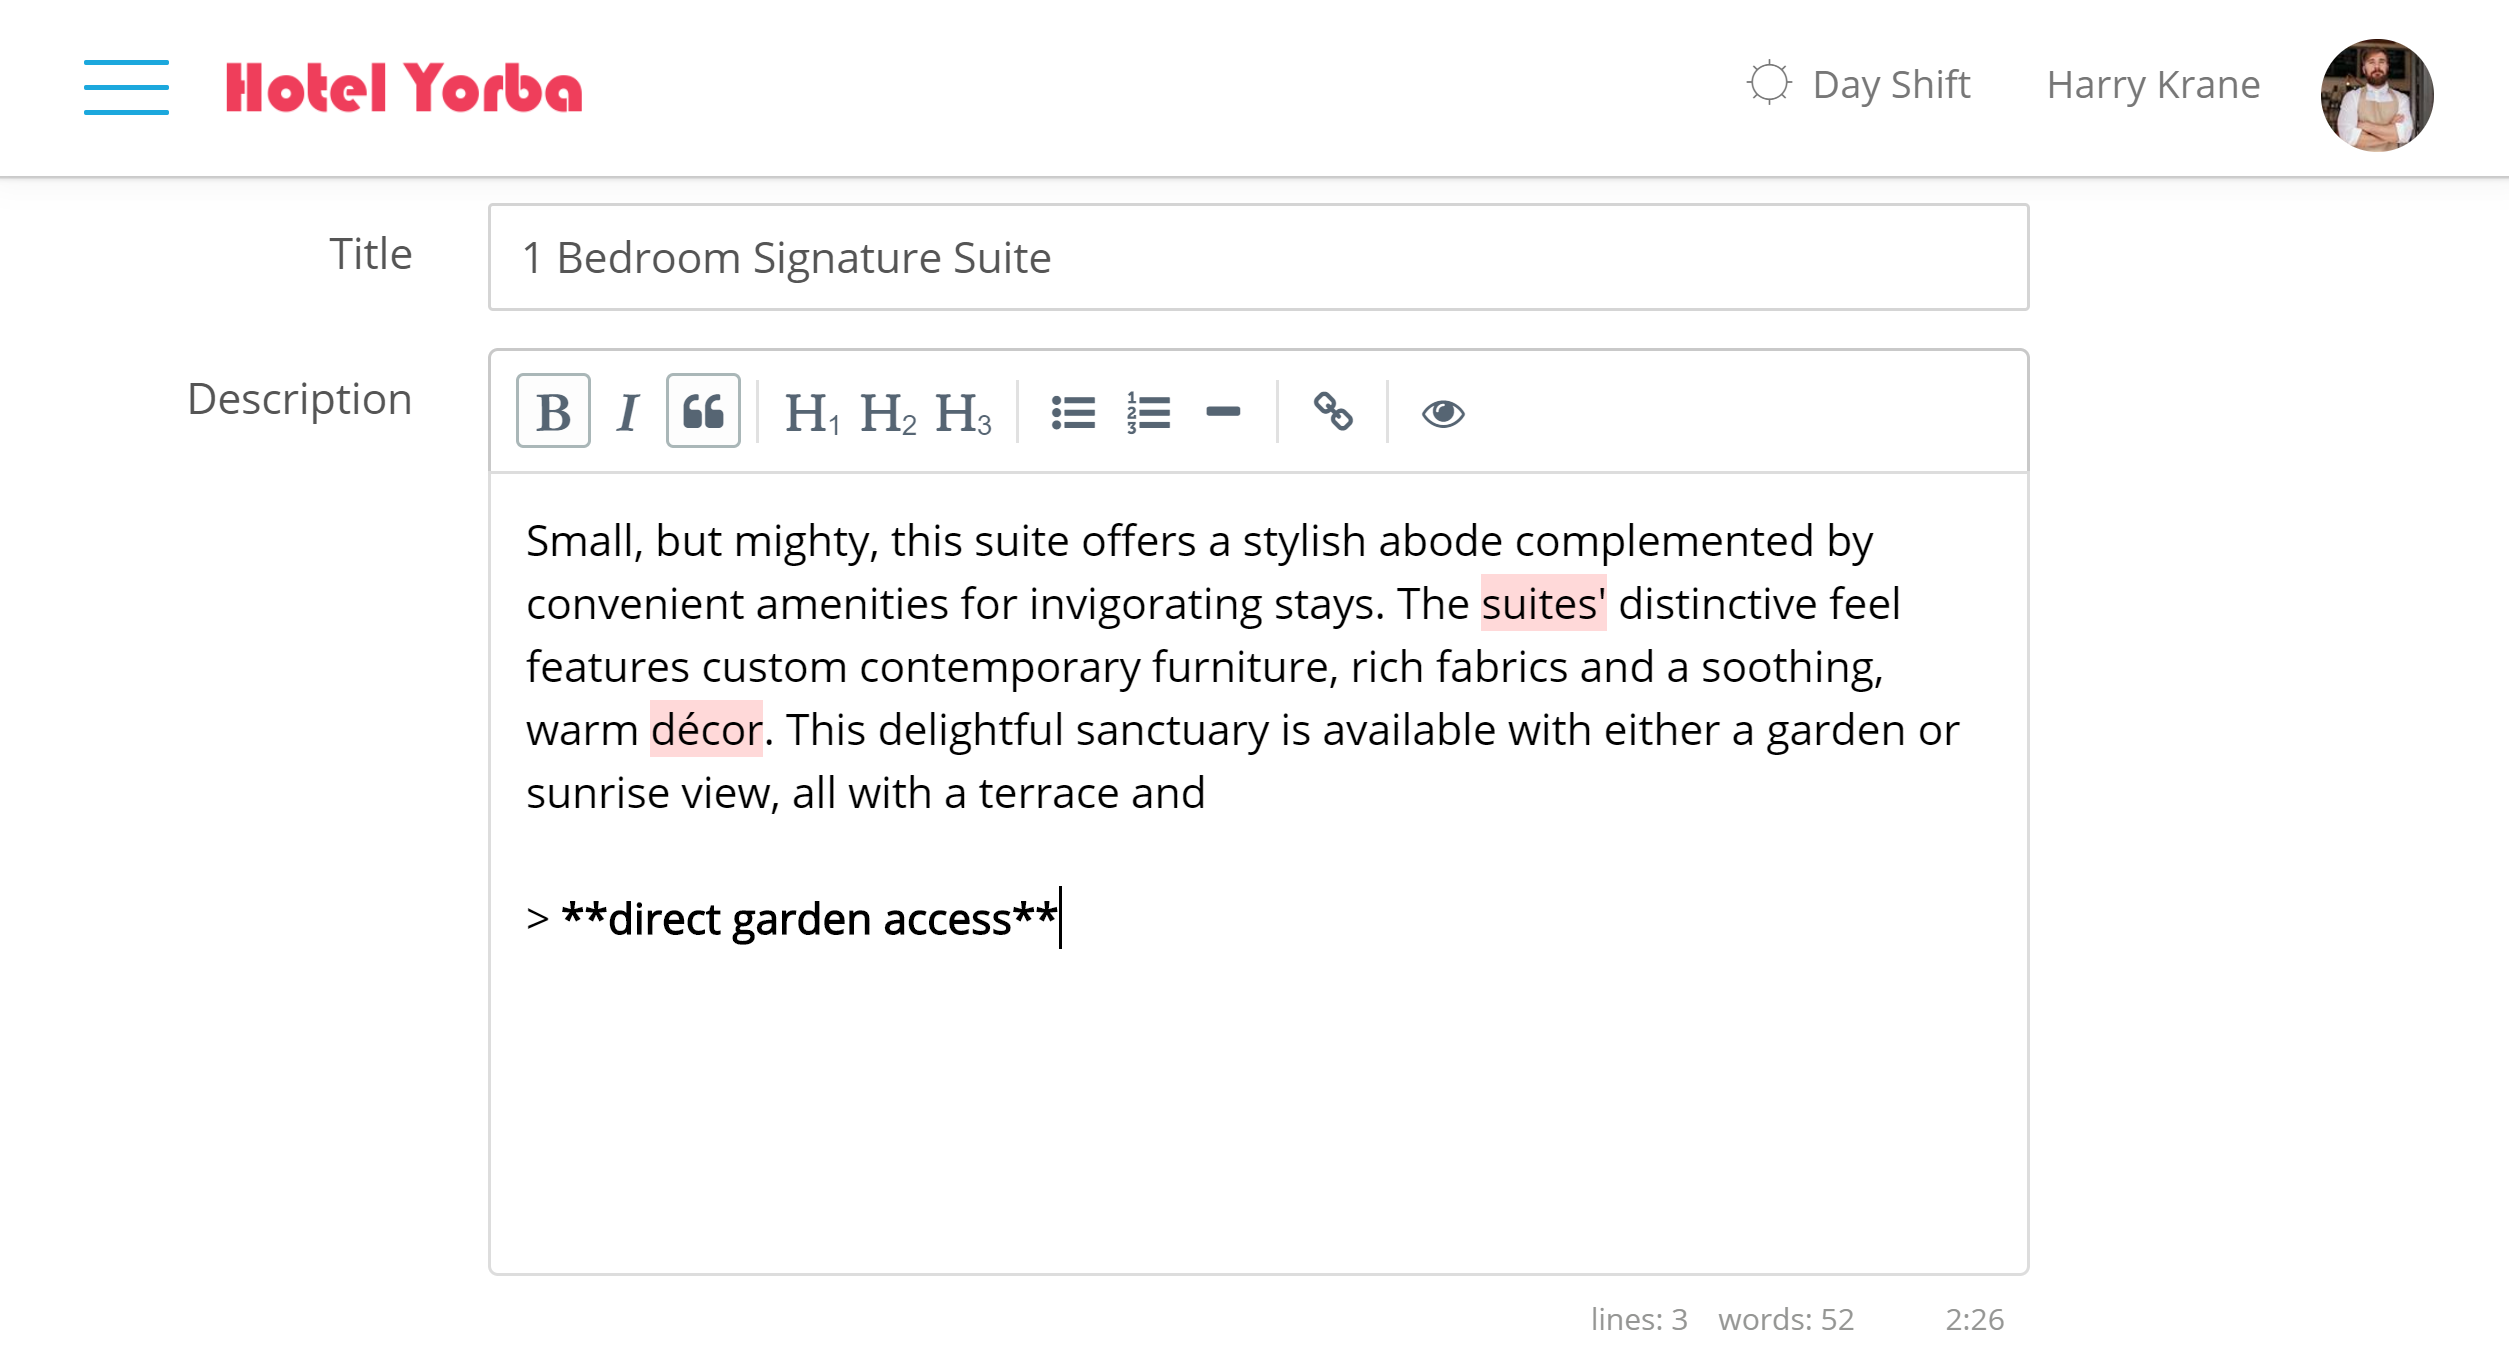 Markdown HTML Available We have updated the hotel Front Desk and hotel Booking Engine so that you can now edit room descriptions and booking engine additions in Markdown HTML! This is a significant improvement that will allow you to further personalize your booking engine to your hotel brand.